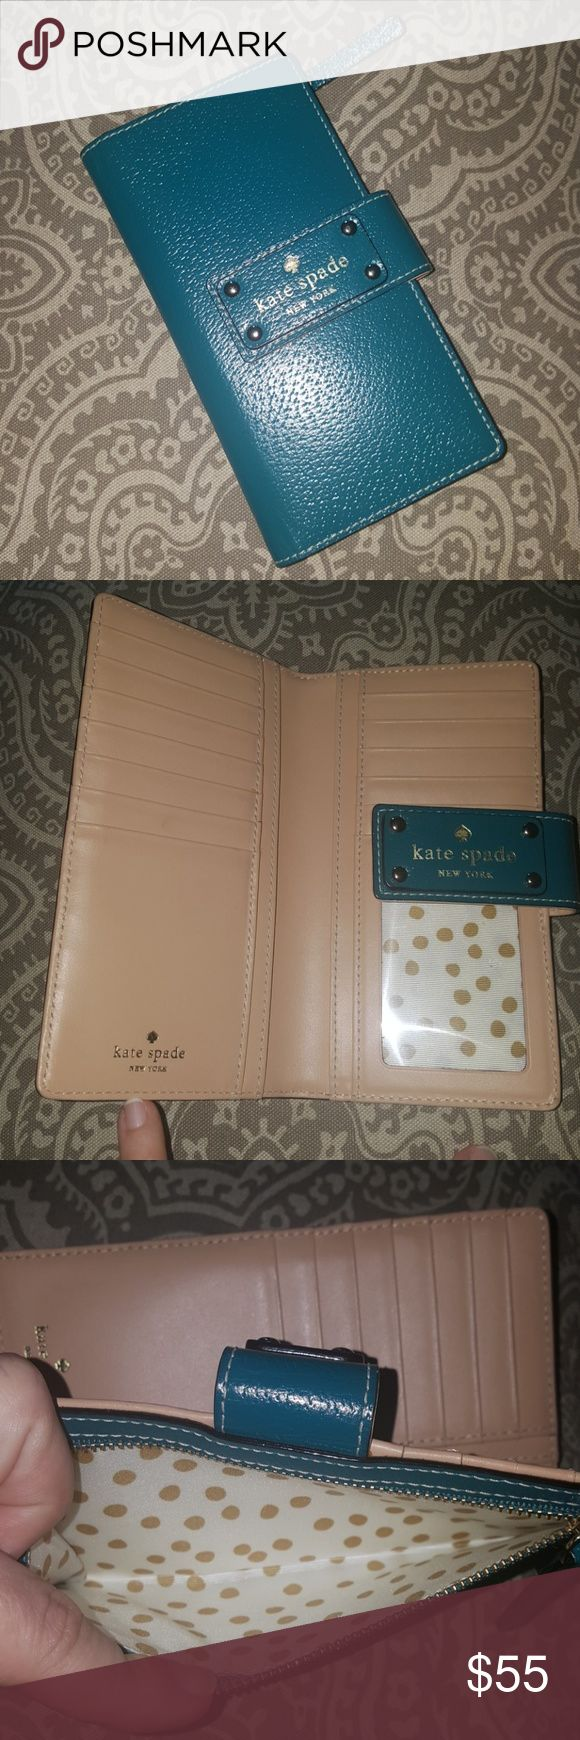 One Hr Sale Beautiful Kate Spade Wallet FLASH SALE! EXCELLENT condition, used for about a week. *Firm* Kate Spade Bags Wallets